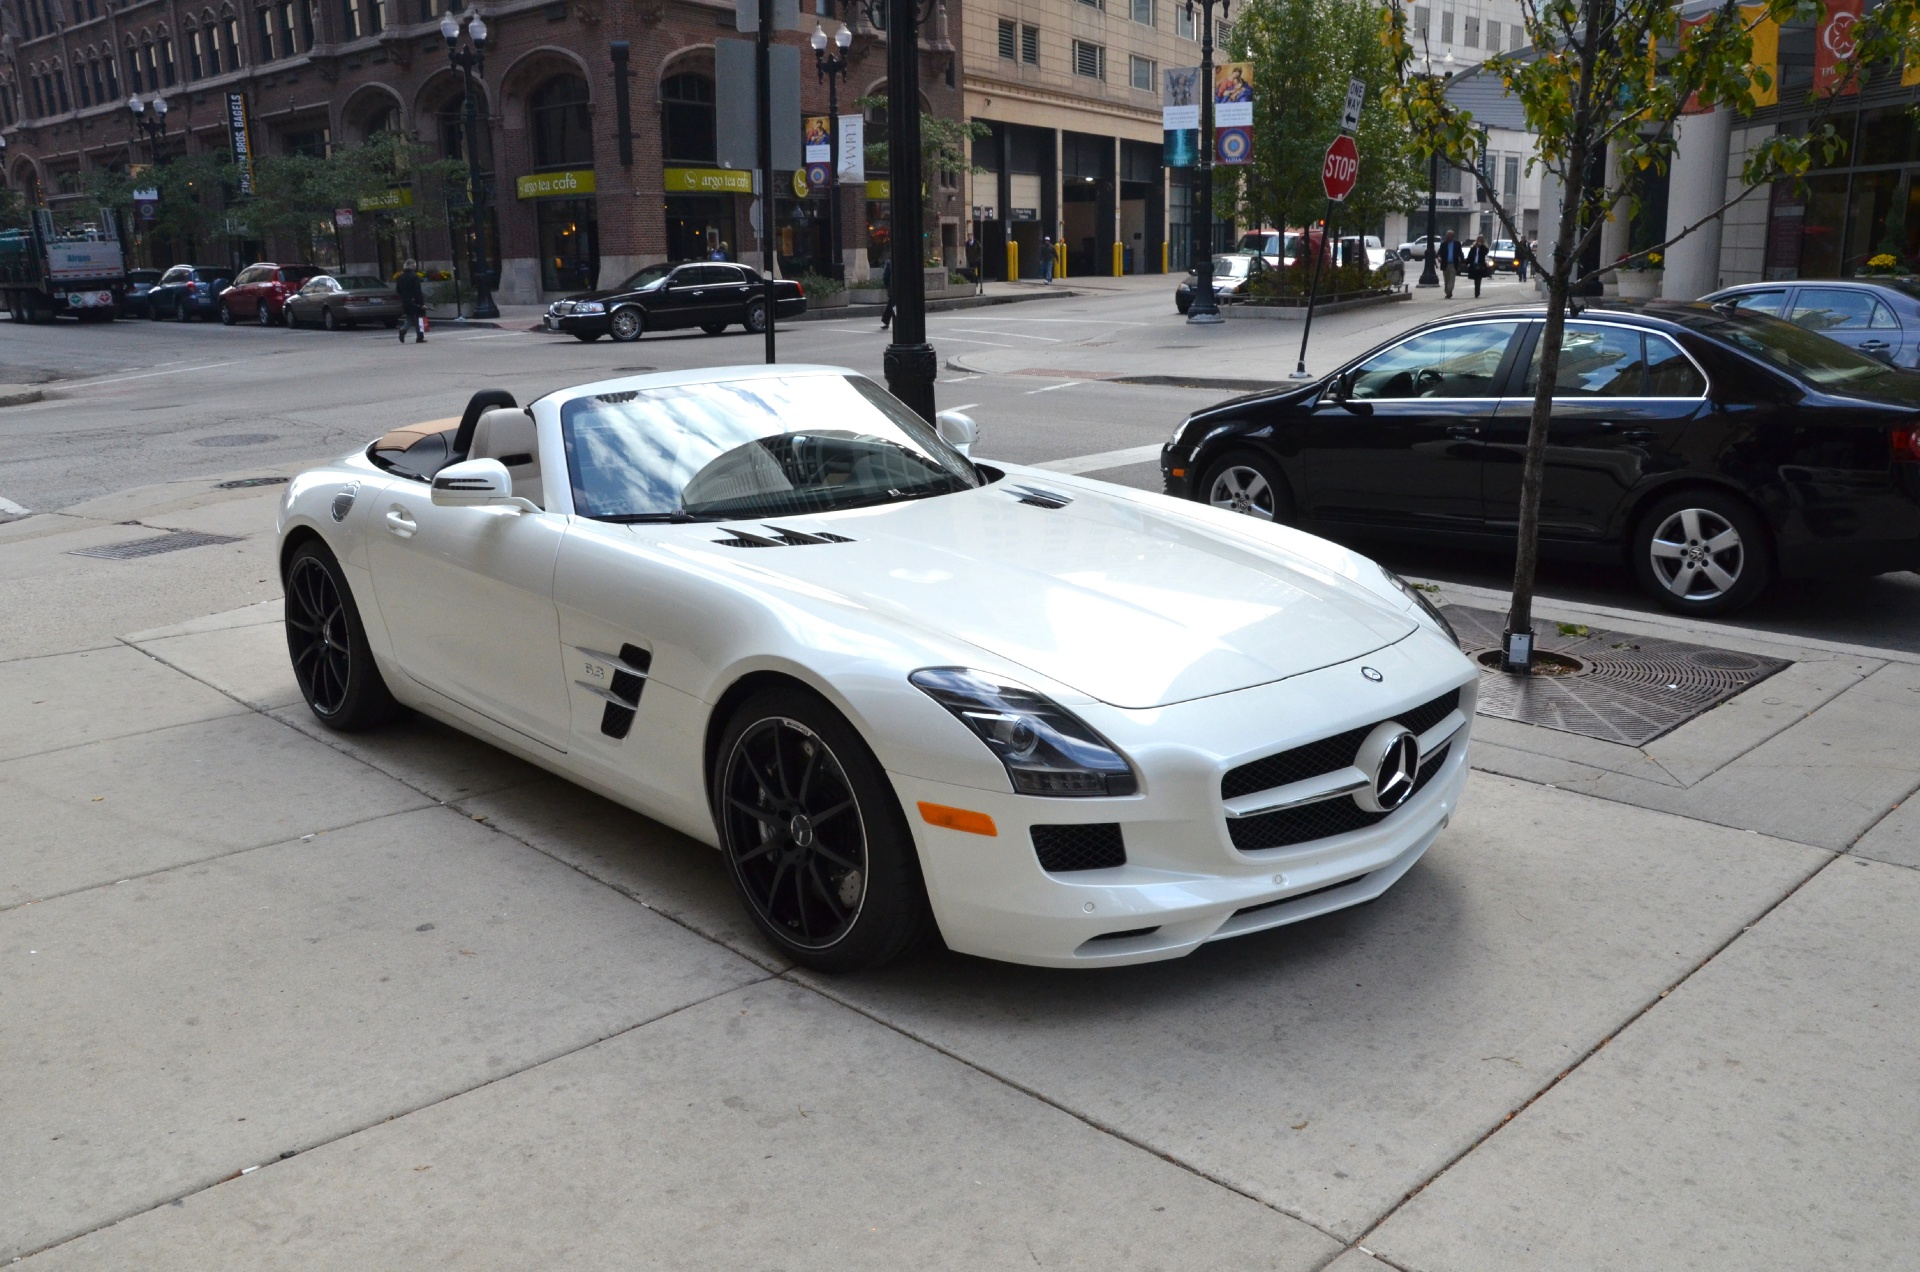 2012 mercedes benz sls class convertible sls amg stock for Used mercedes benz sls amg for sale